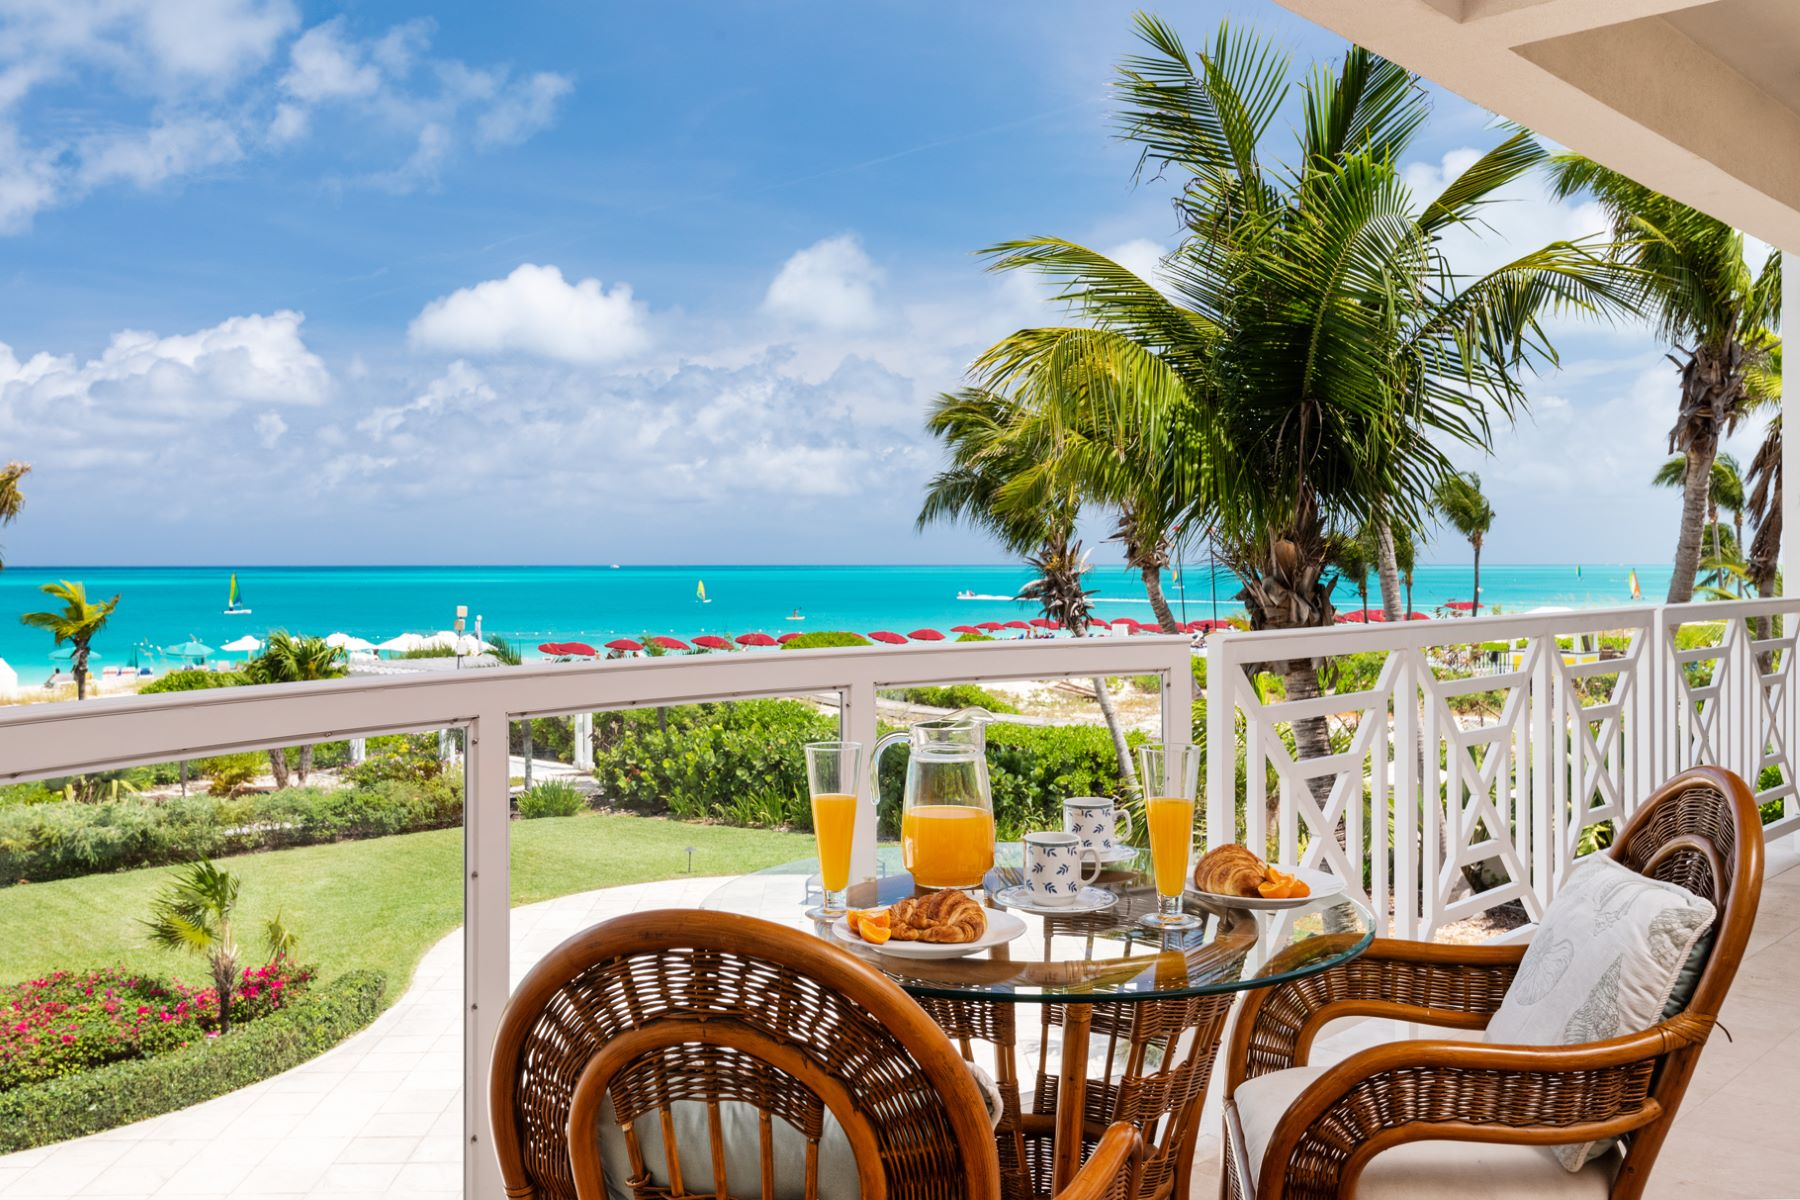 Condominium for Sale at The Grandview on Grace Bay - Suite 202 Grace Bay, Providenciales Turks And Caicos Islands